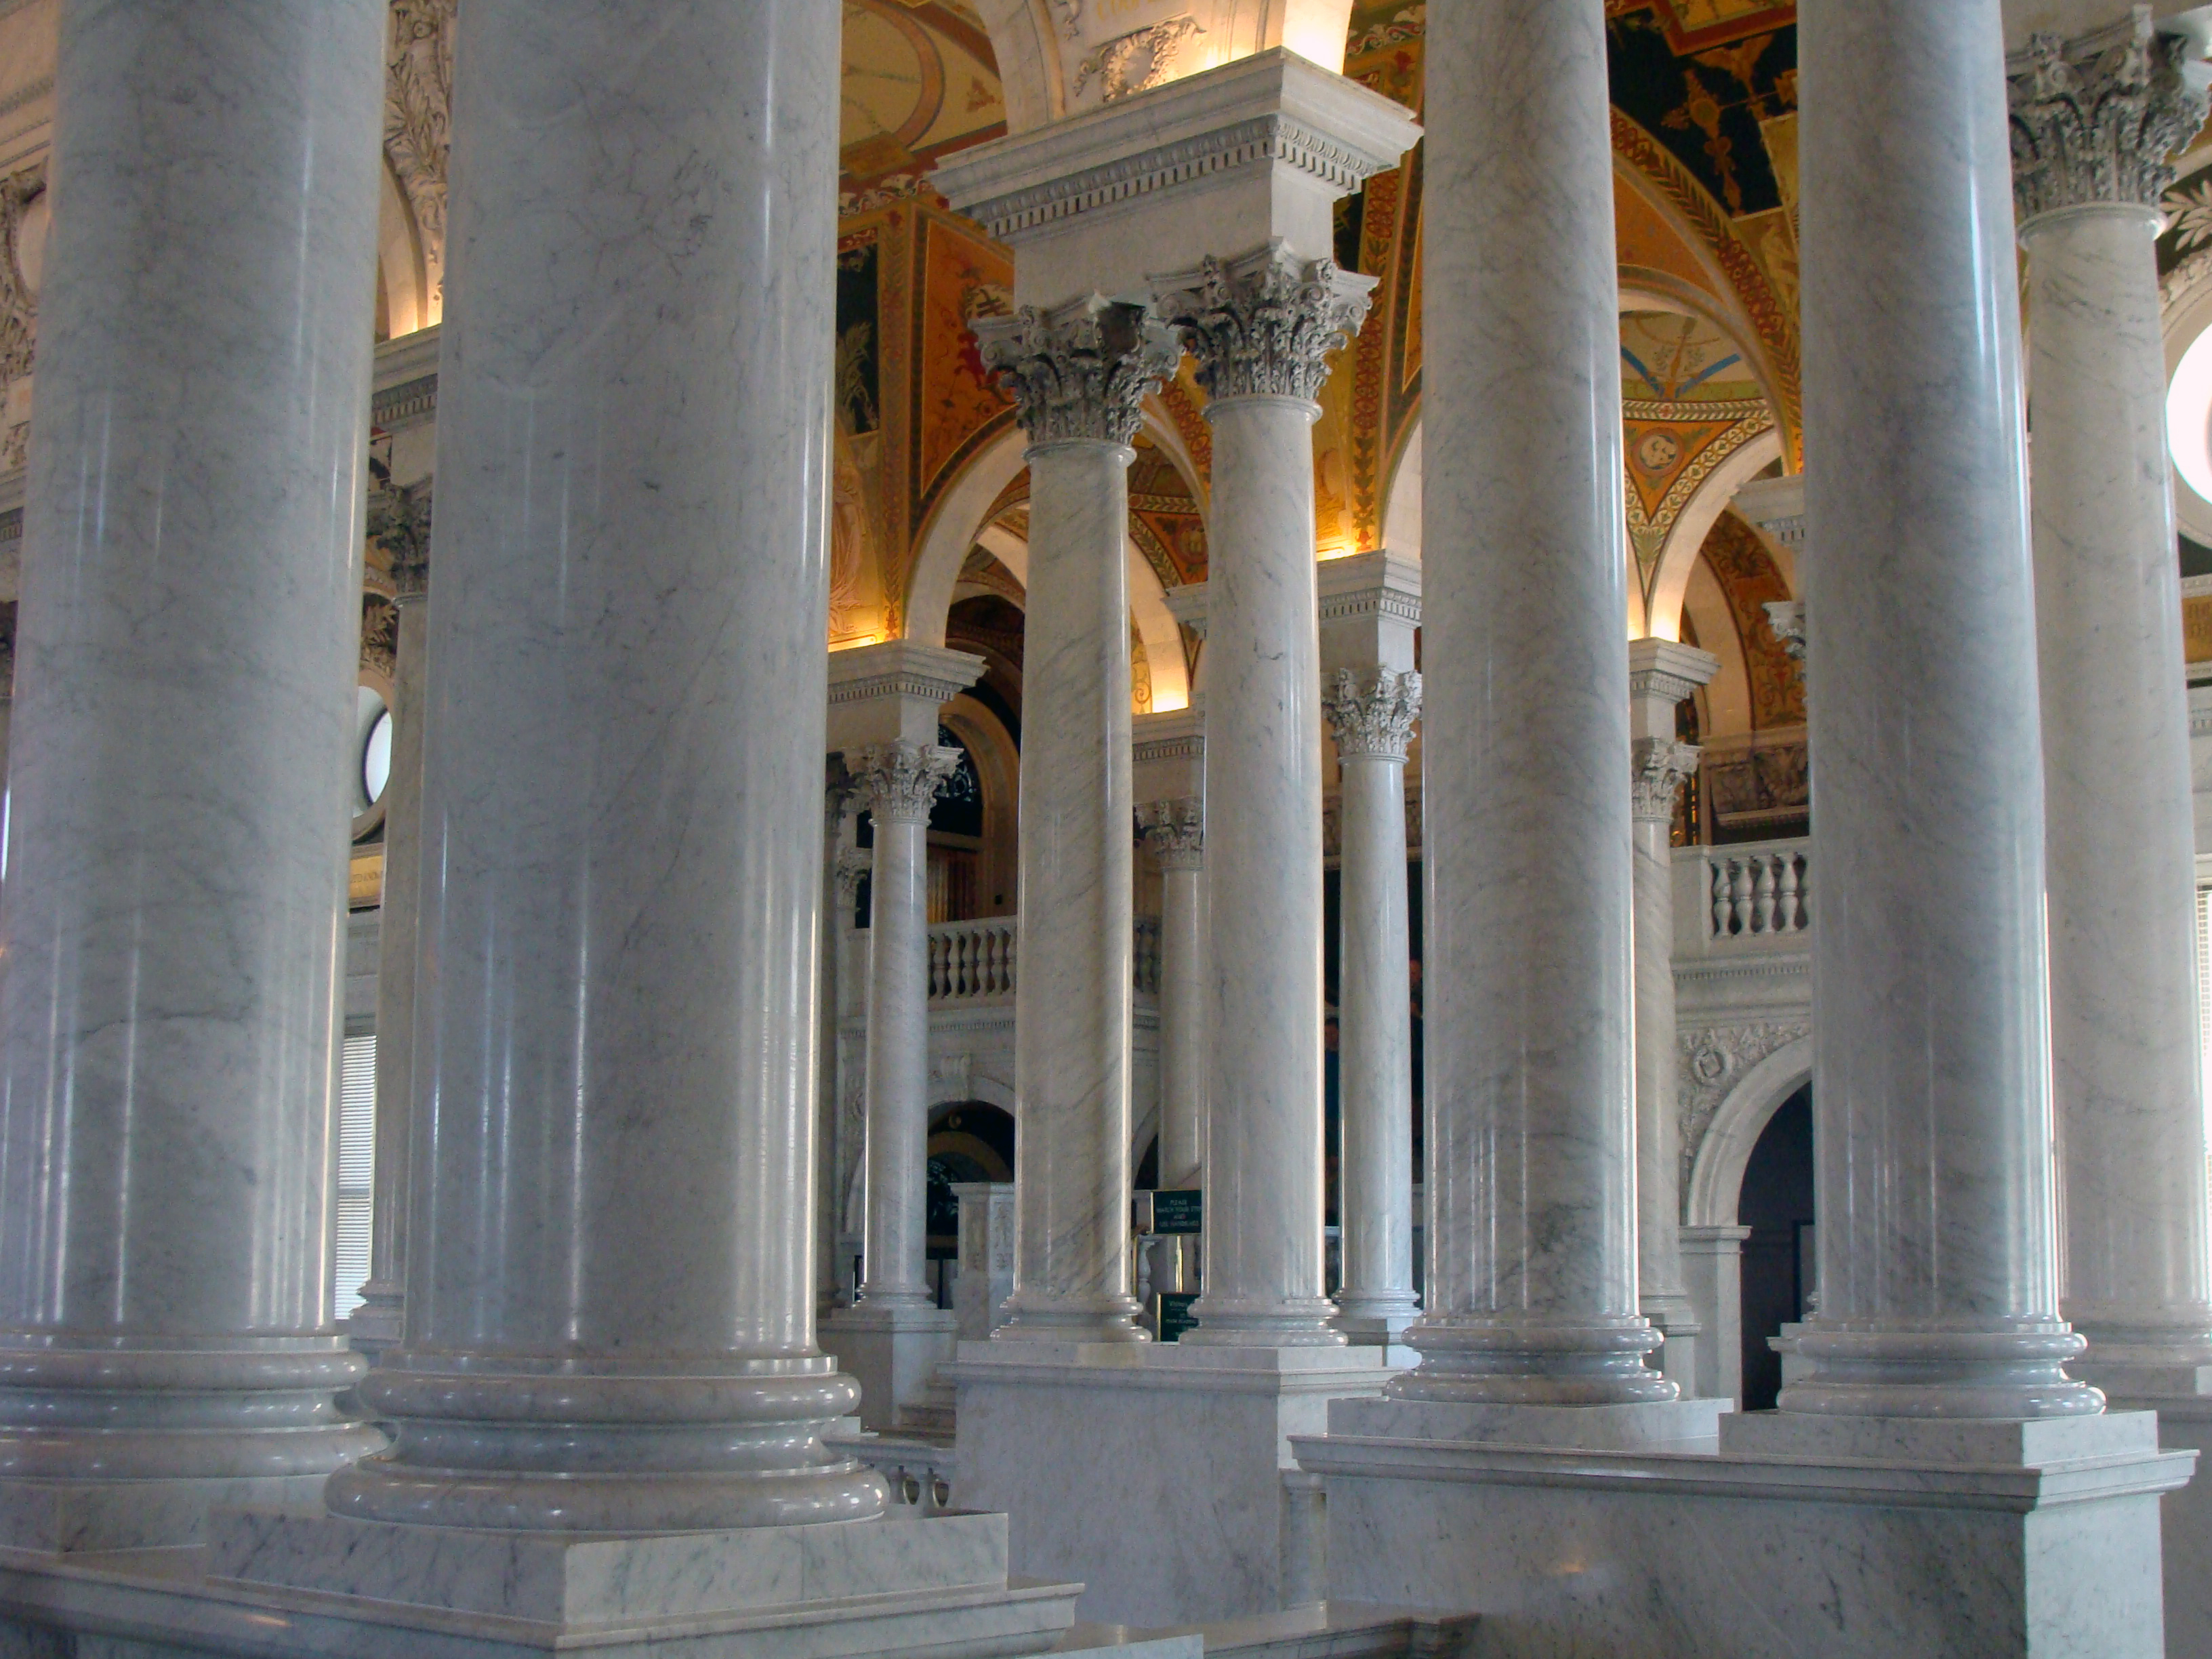 Library_of_Congress_Entrance_Hall_Columns